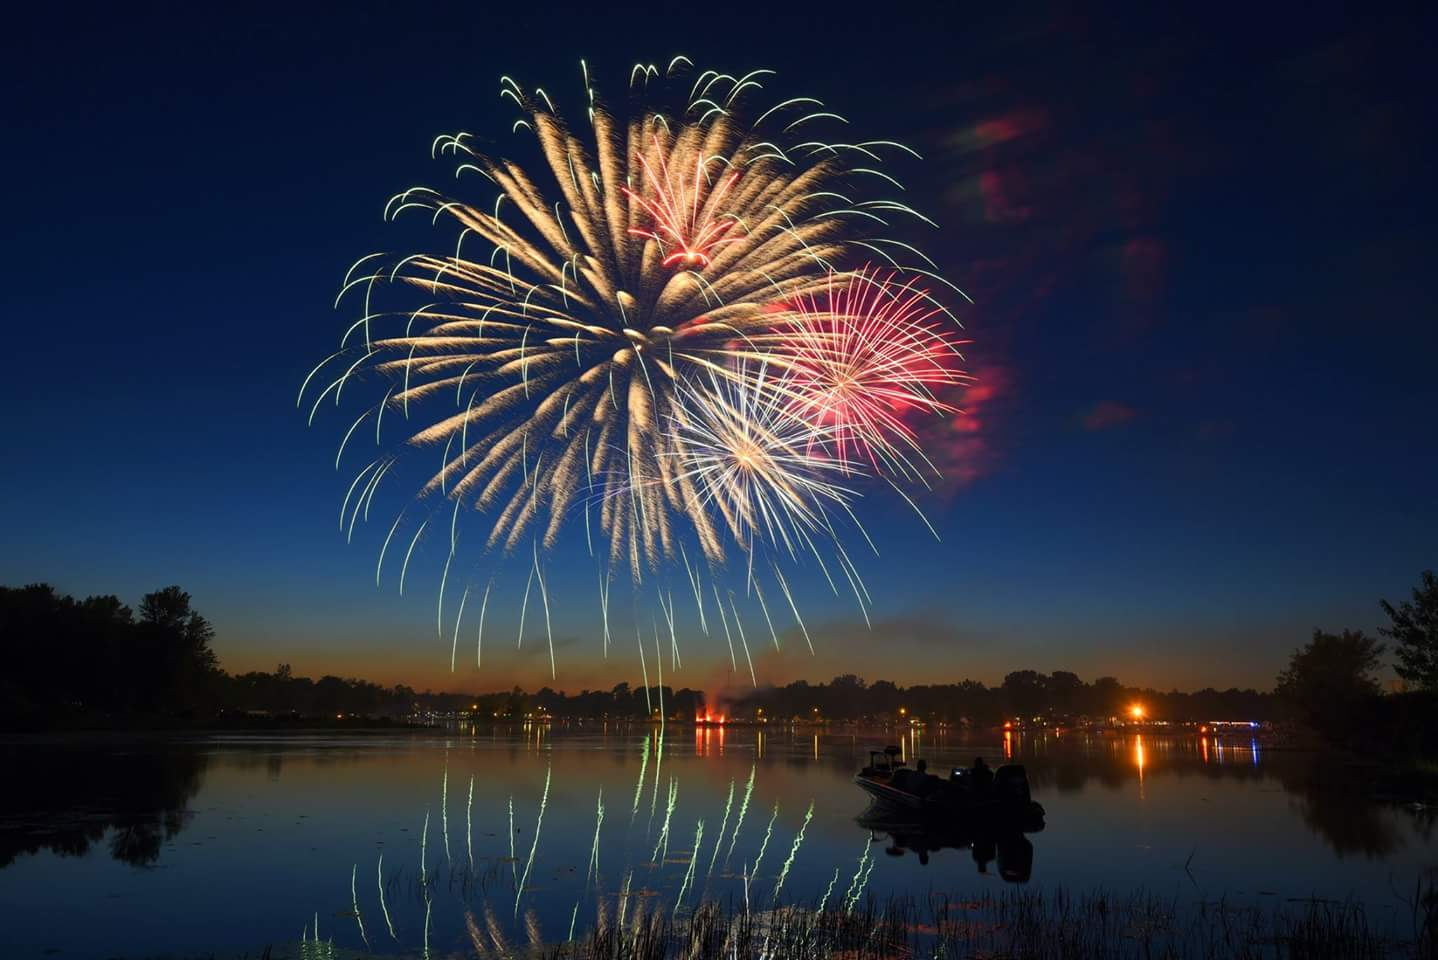 Fireworks On The River - Fort Brewerton/Greater Oneida Lake